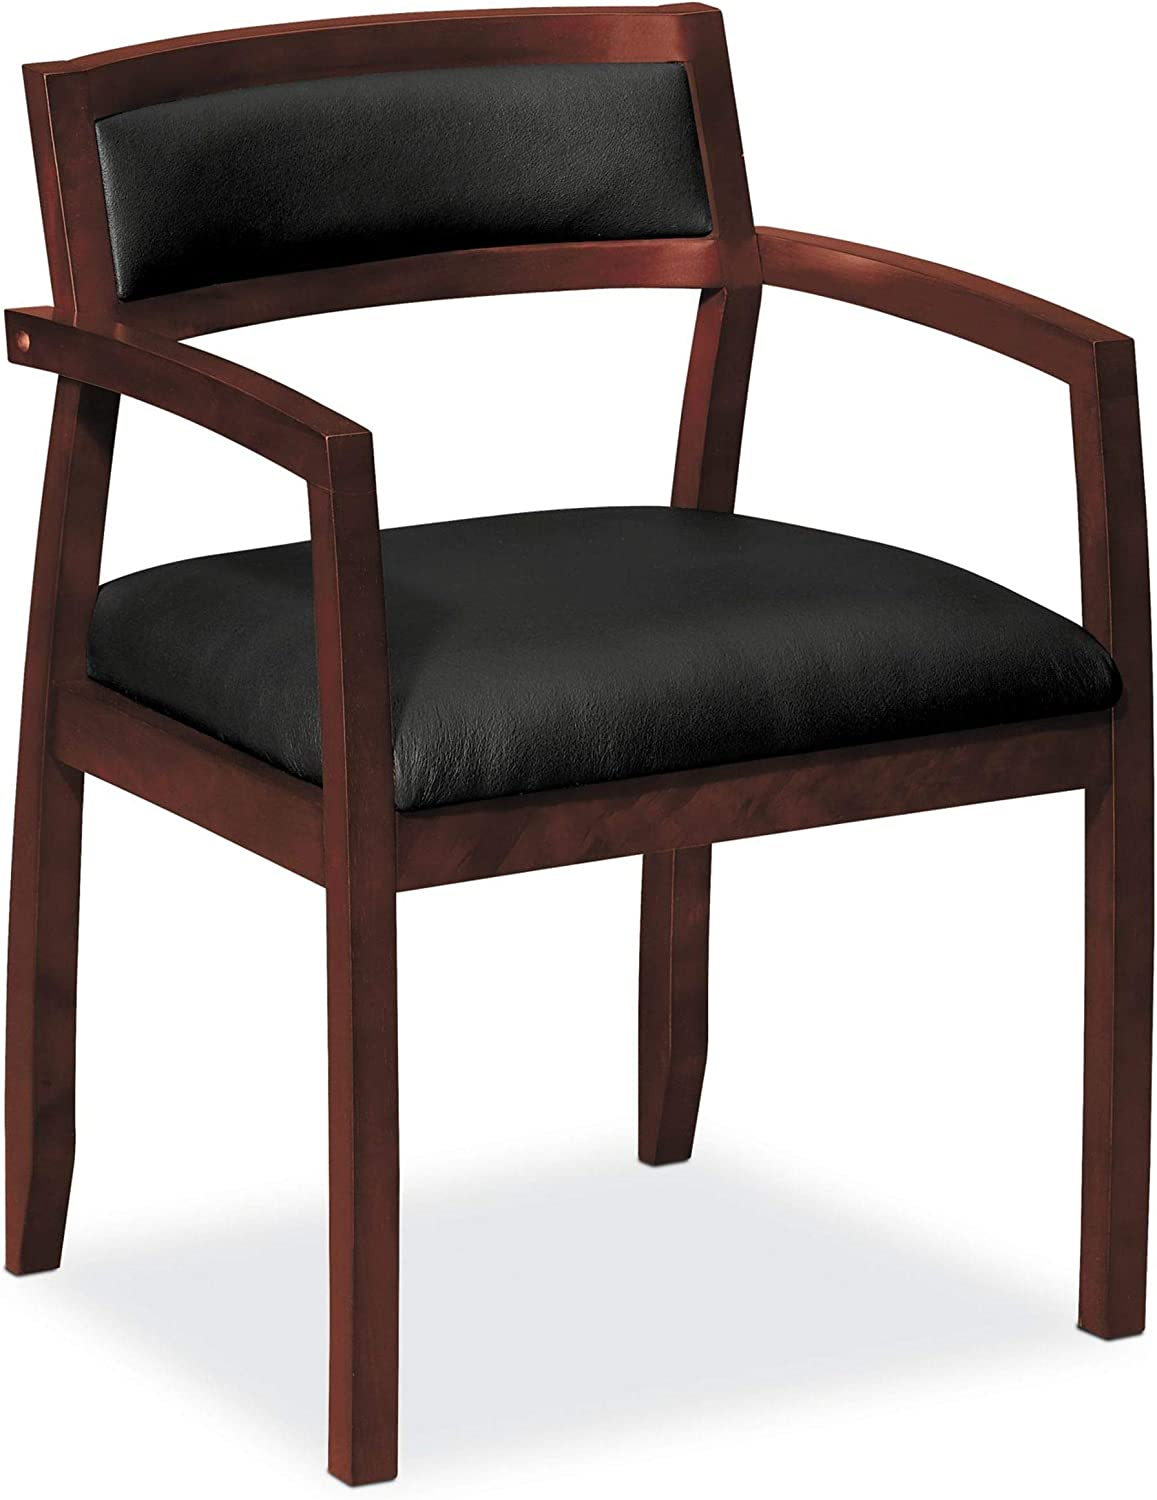 HON HVL852.N.SB11 Topflight Wood Guest Chair – Leather Seated Guest Chair with Arms, Office Furniture, Mahogany Finish VL852